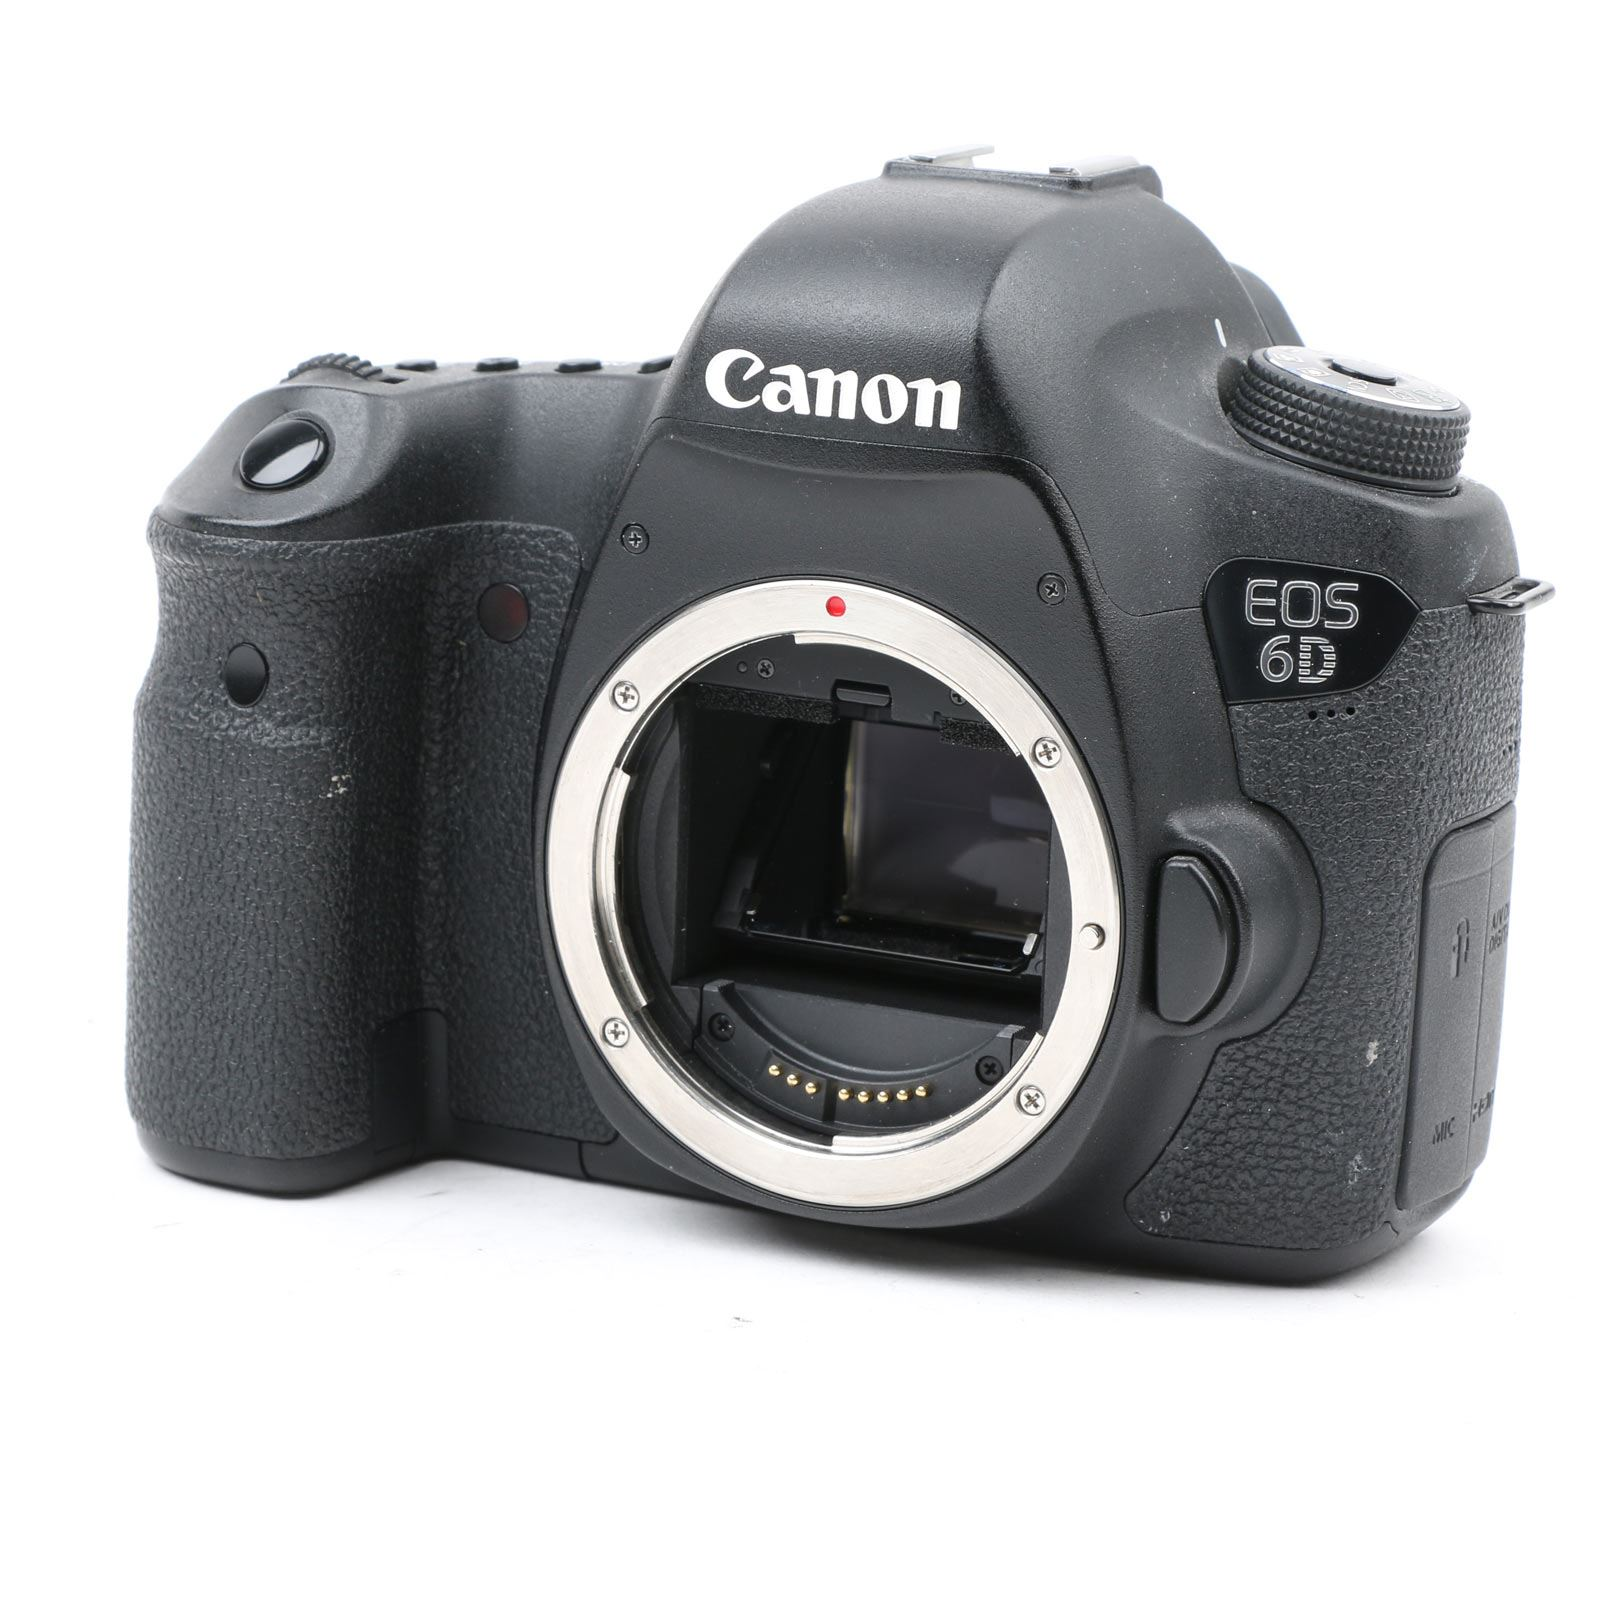 Image of Used Canon EOS 6D Digital SLR Camera Body